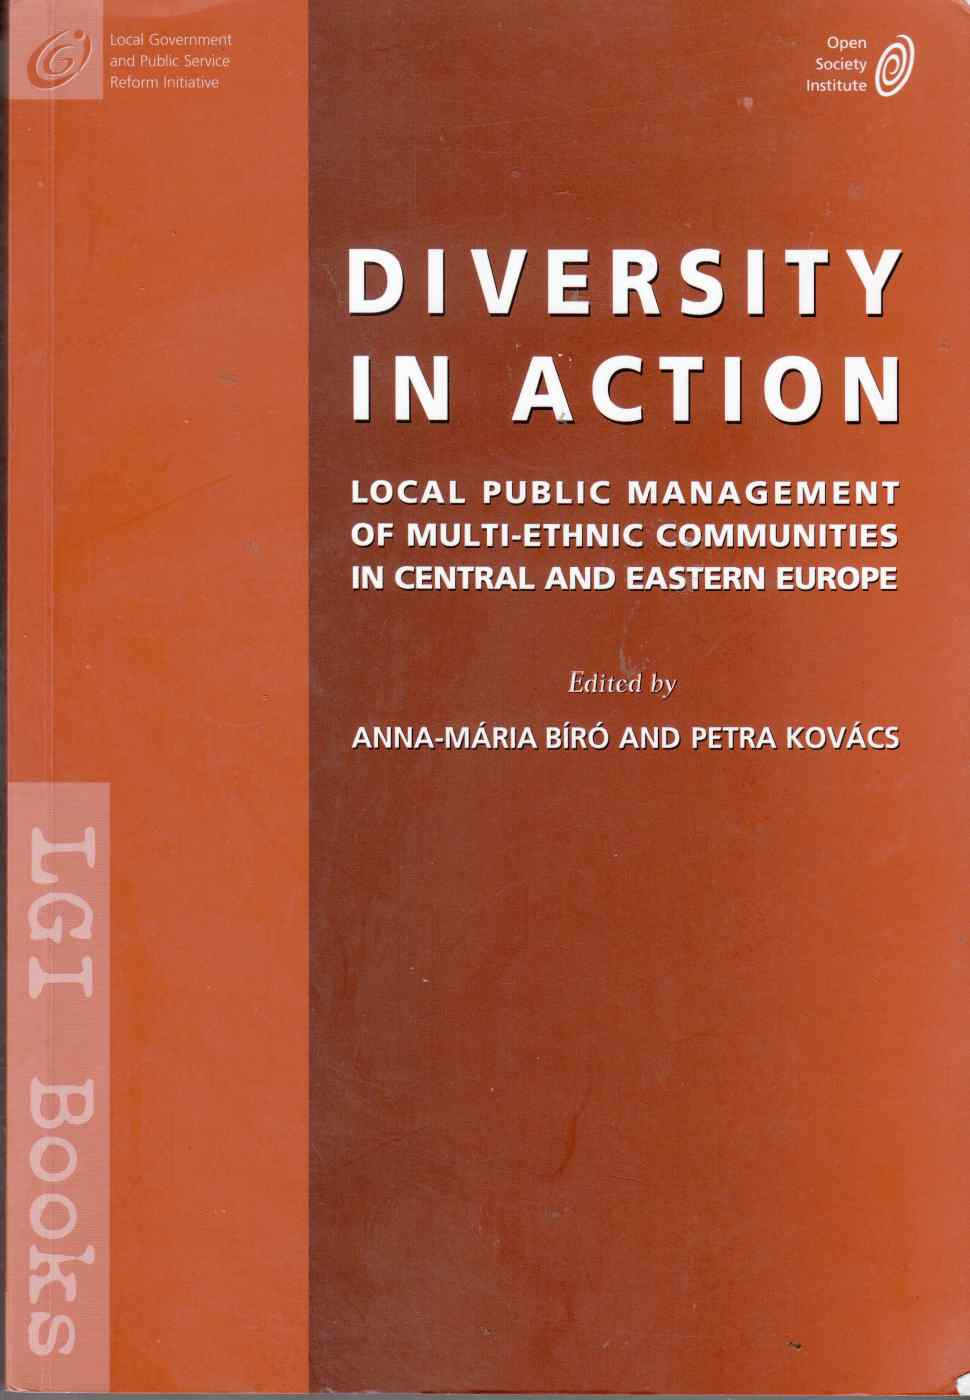 Image for Diversity in Action Local Public Management of Multi-Ethnic Communities in Central and Eastern Europe